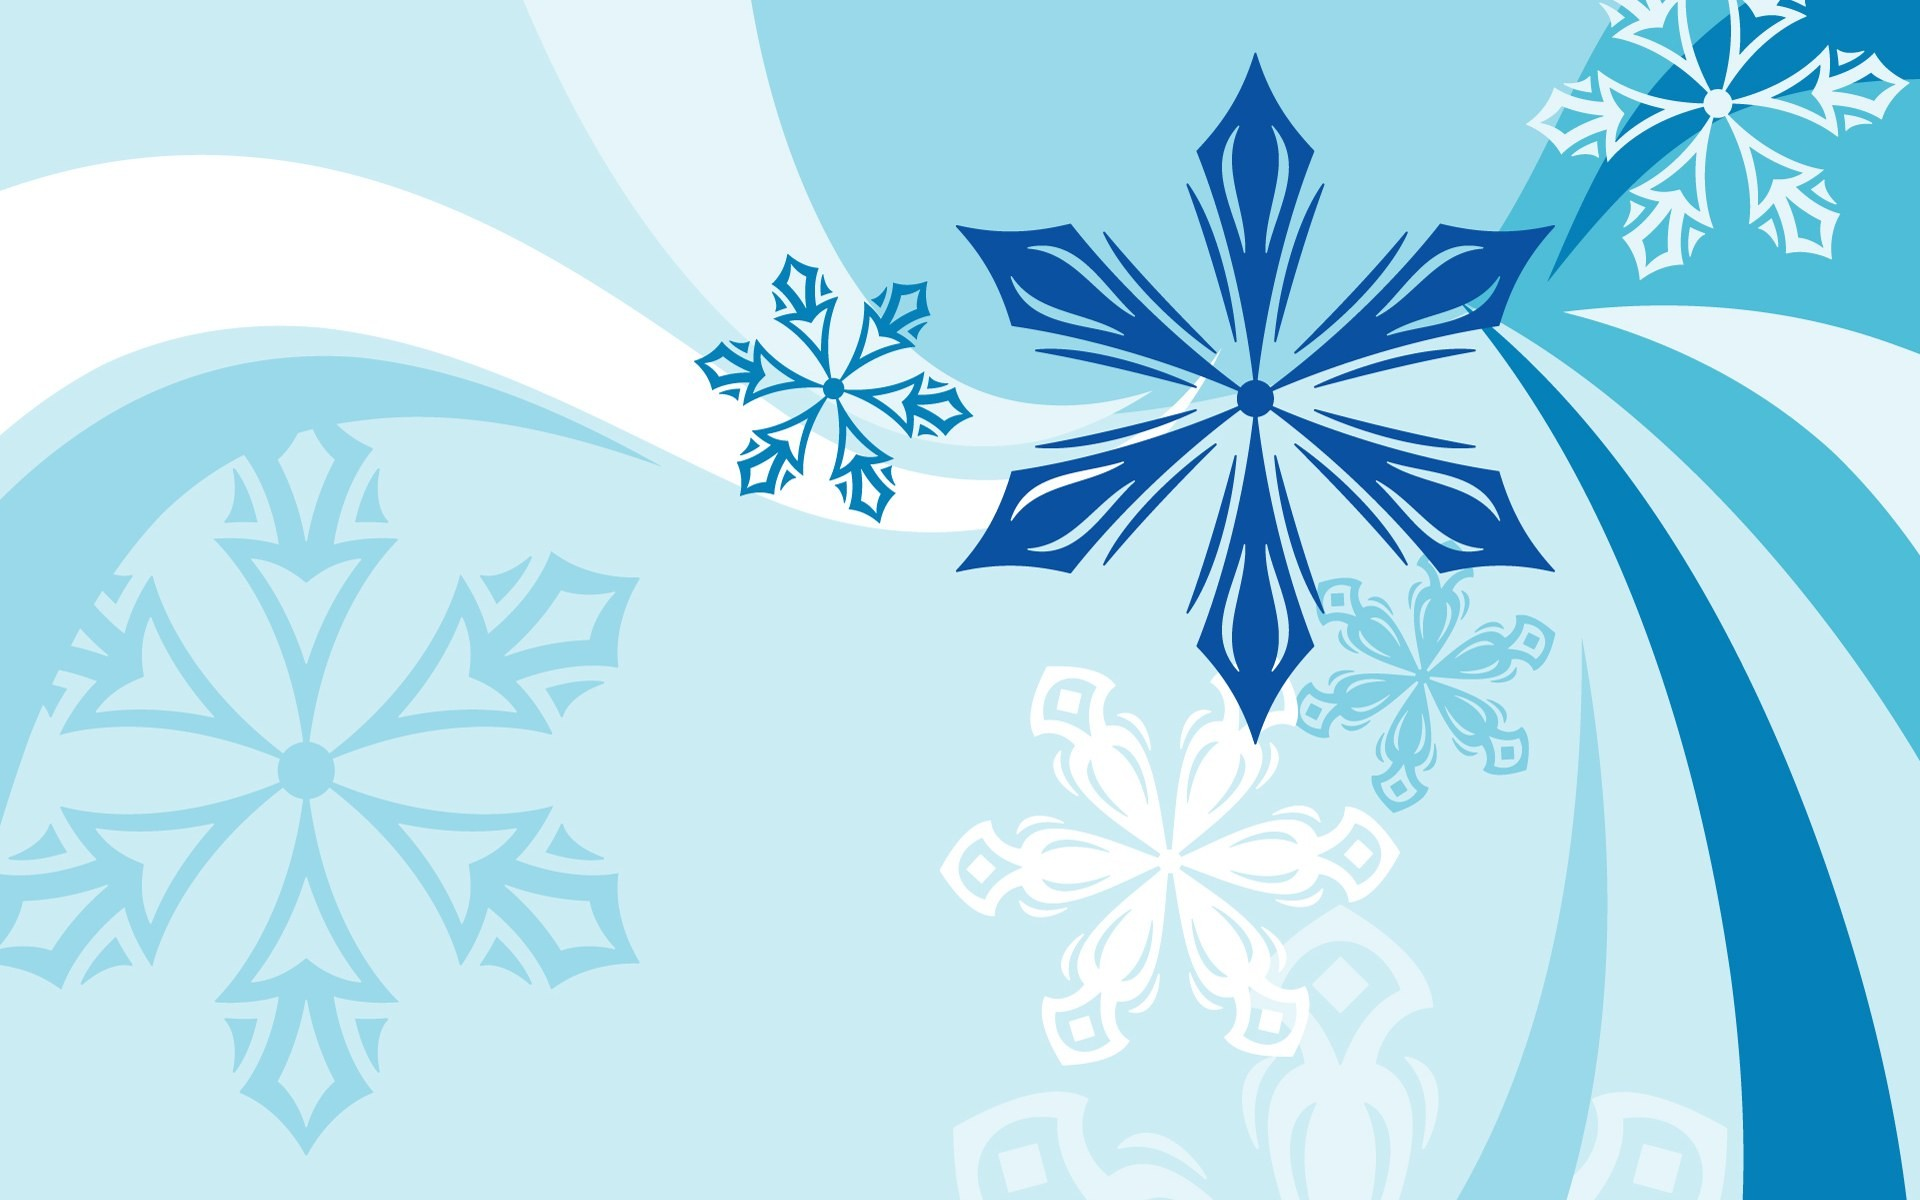 468 Winter Wonderland free clipart.